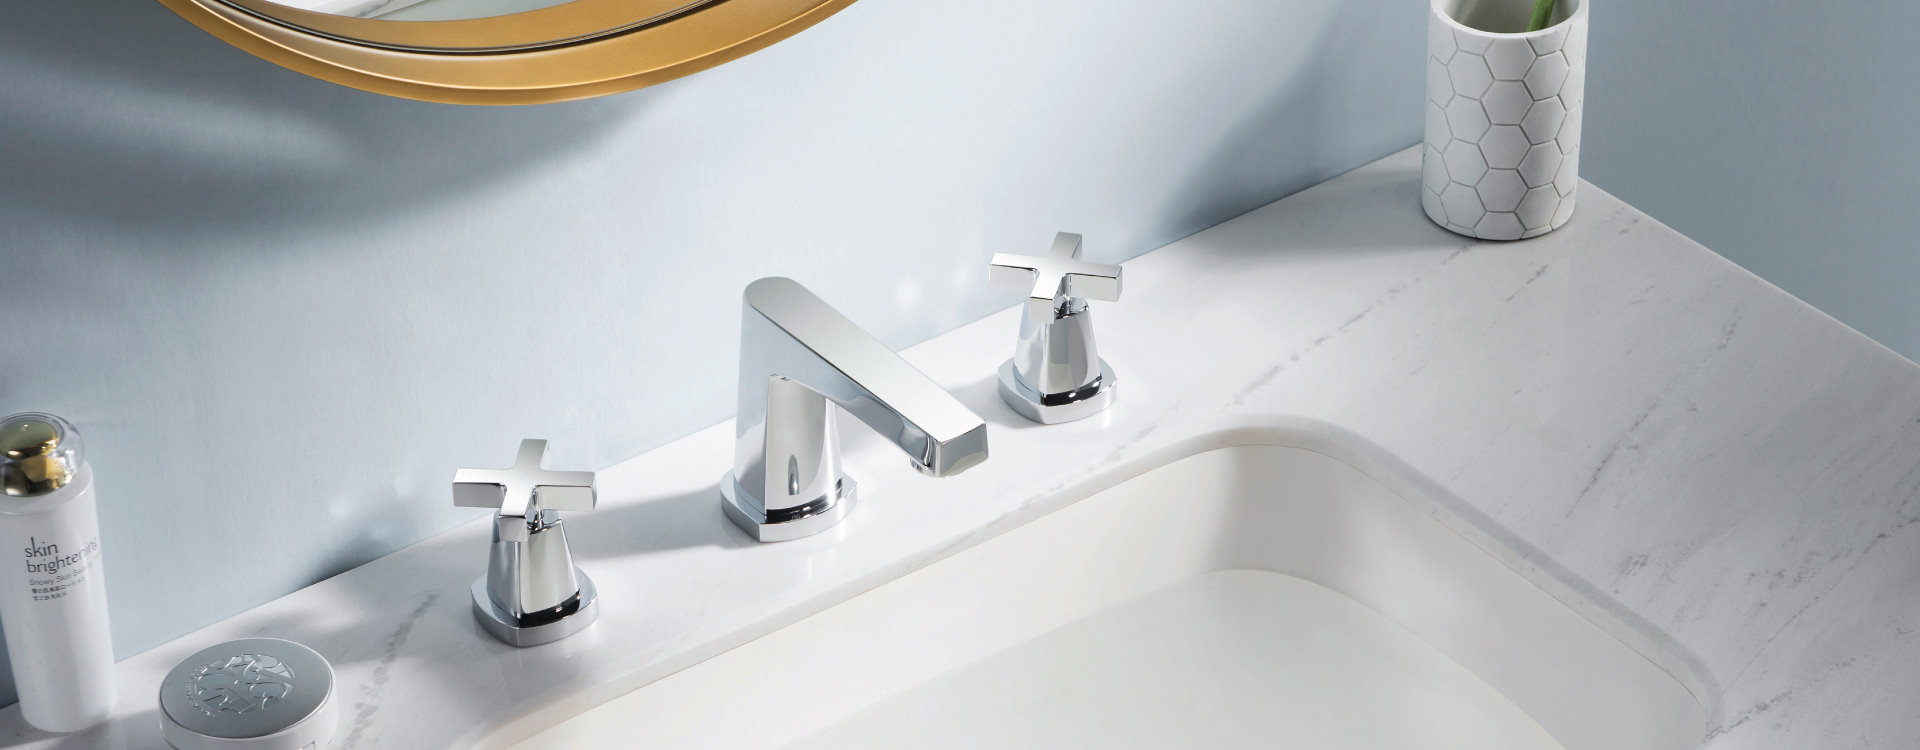 transitional faucet with cross handles